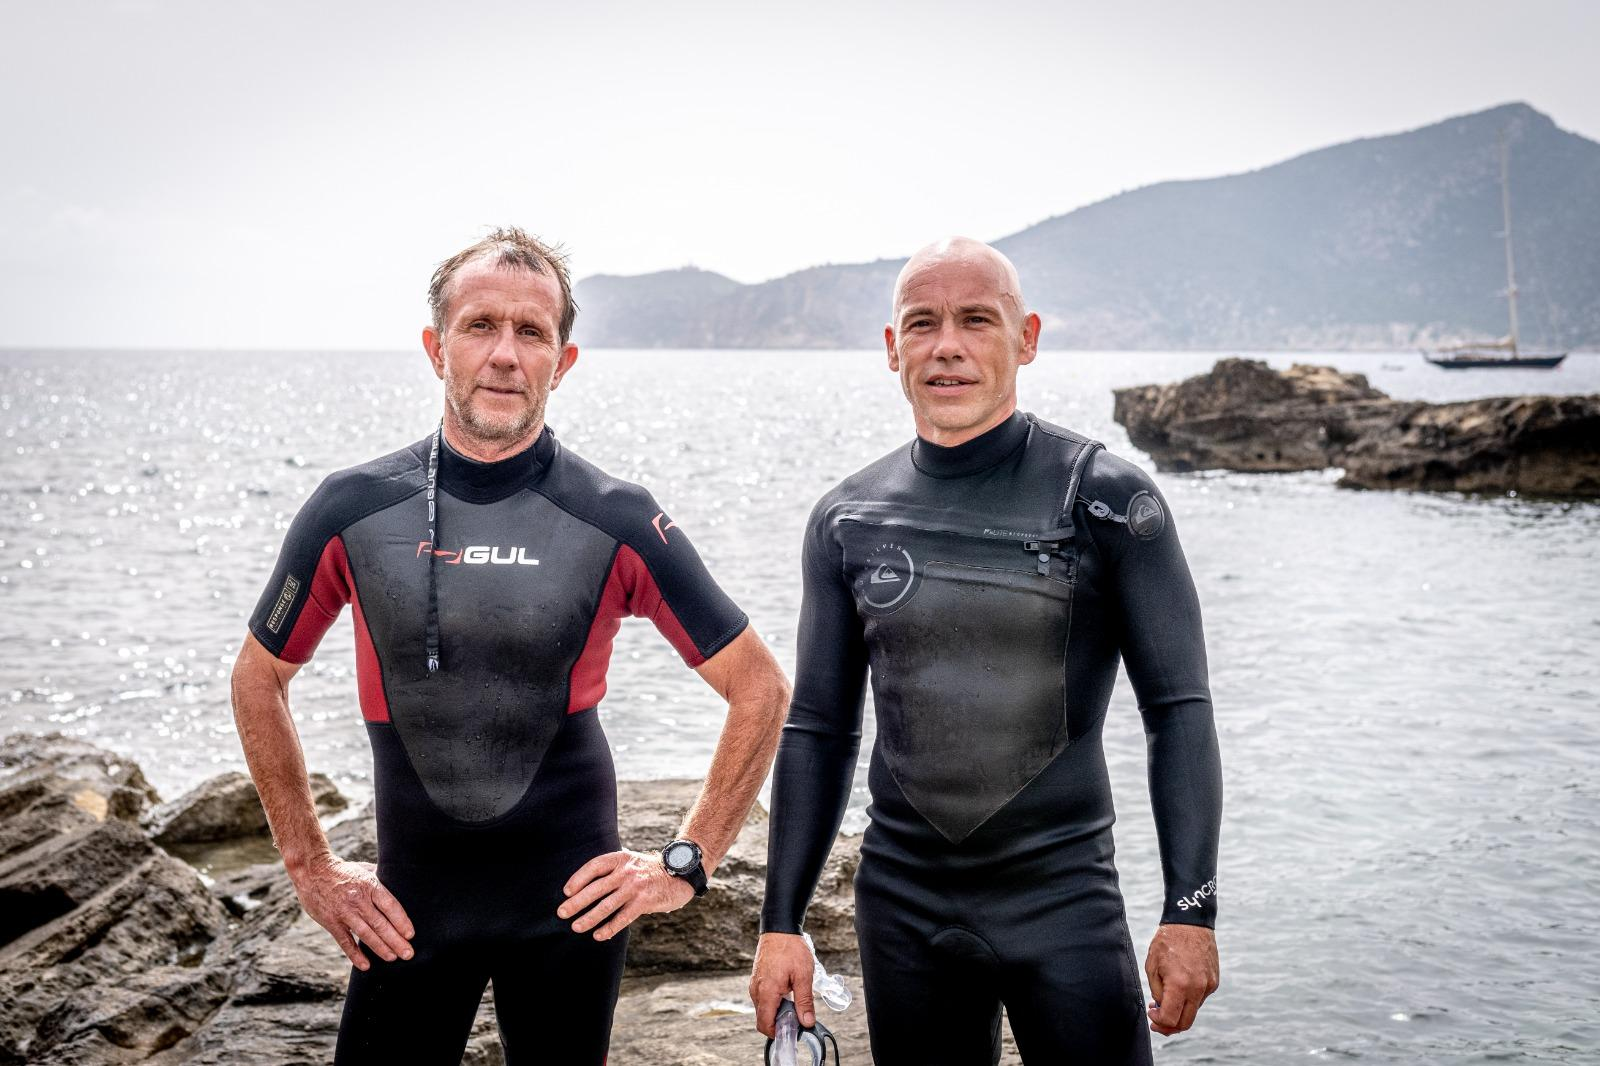 Tim (left) and Pete are snorkelling around the island